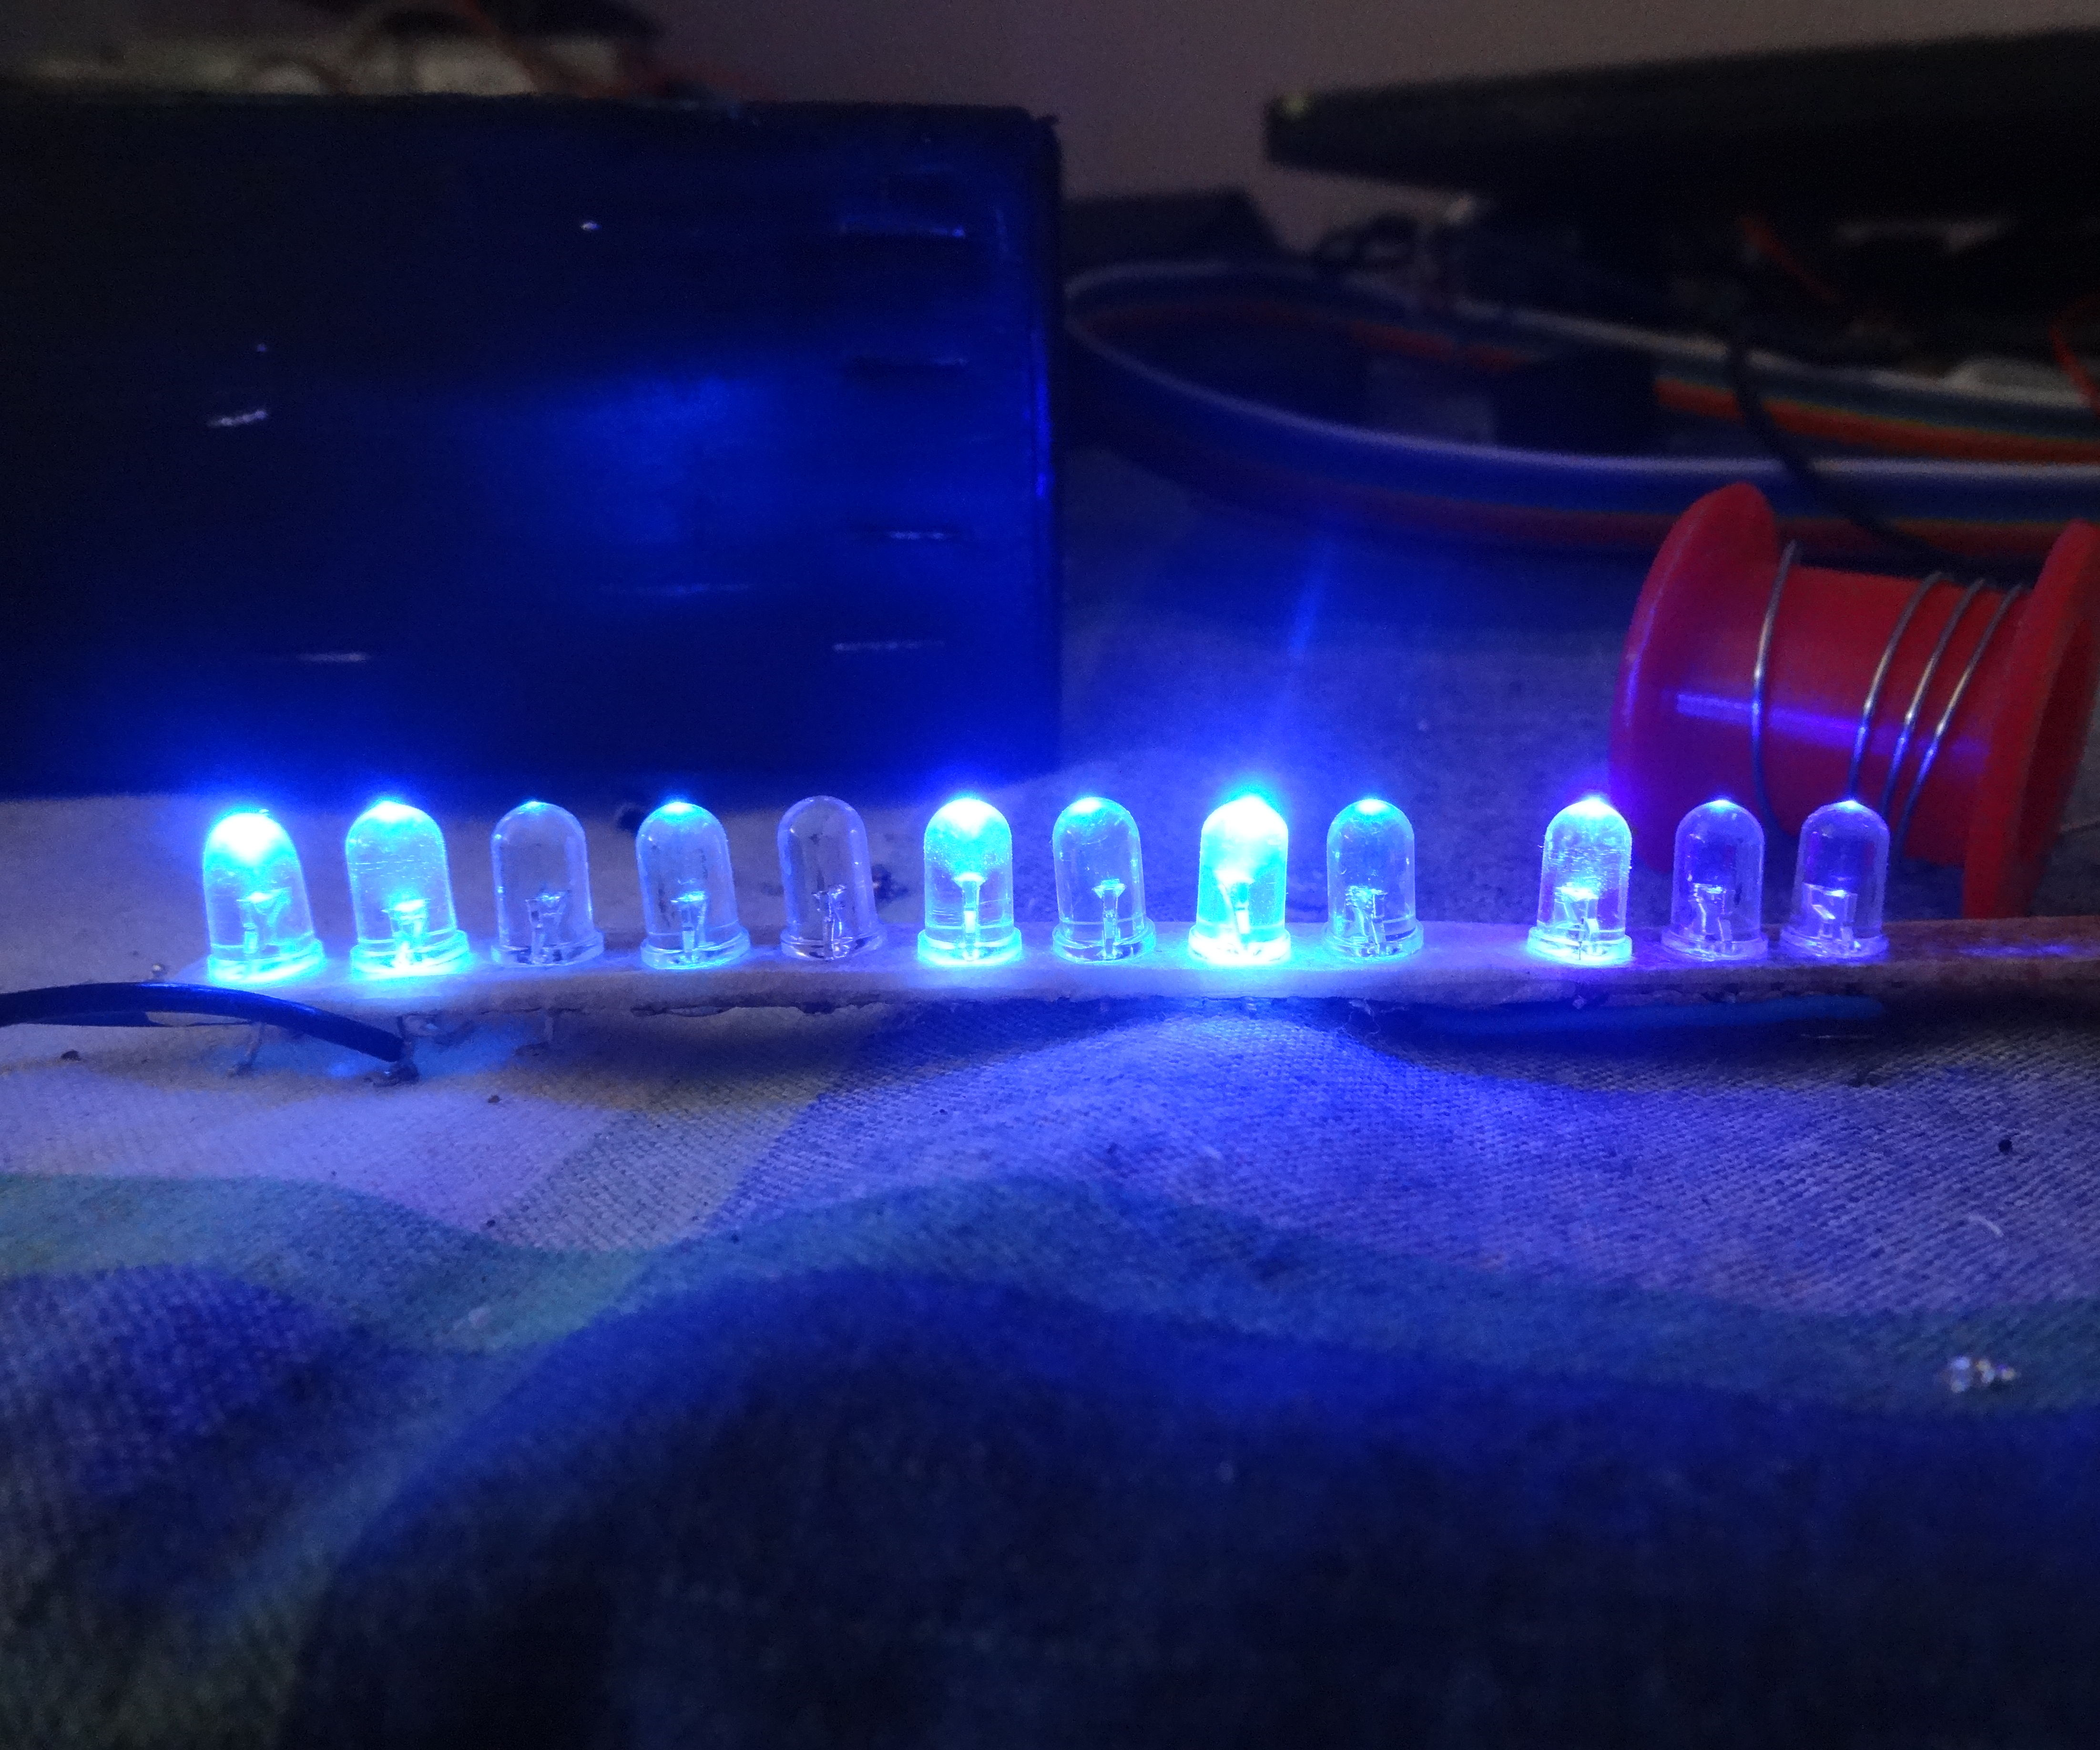 DIY MUSIC CONTROLLED LEDS